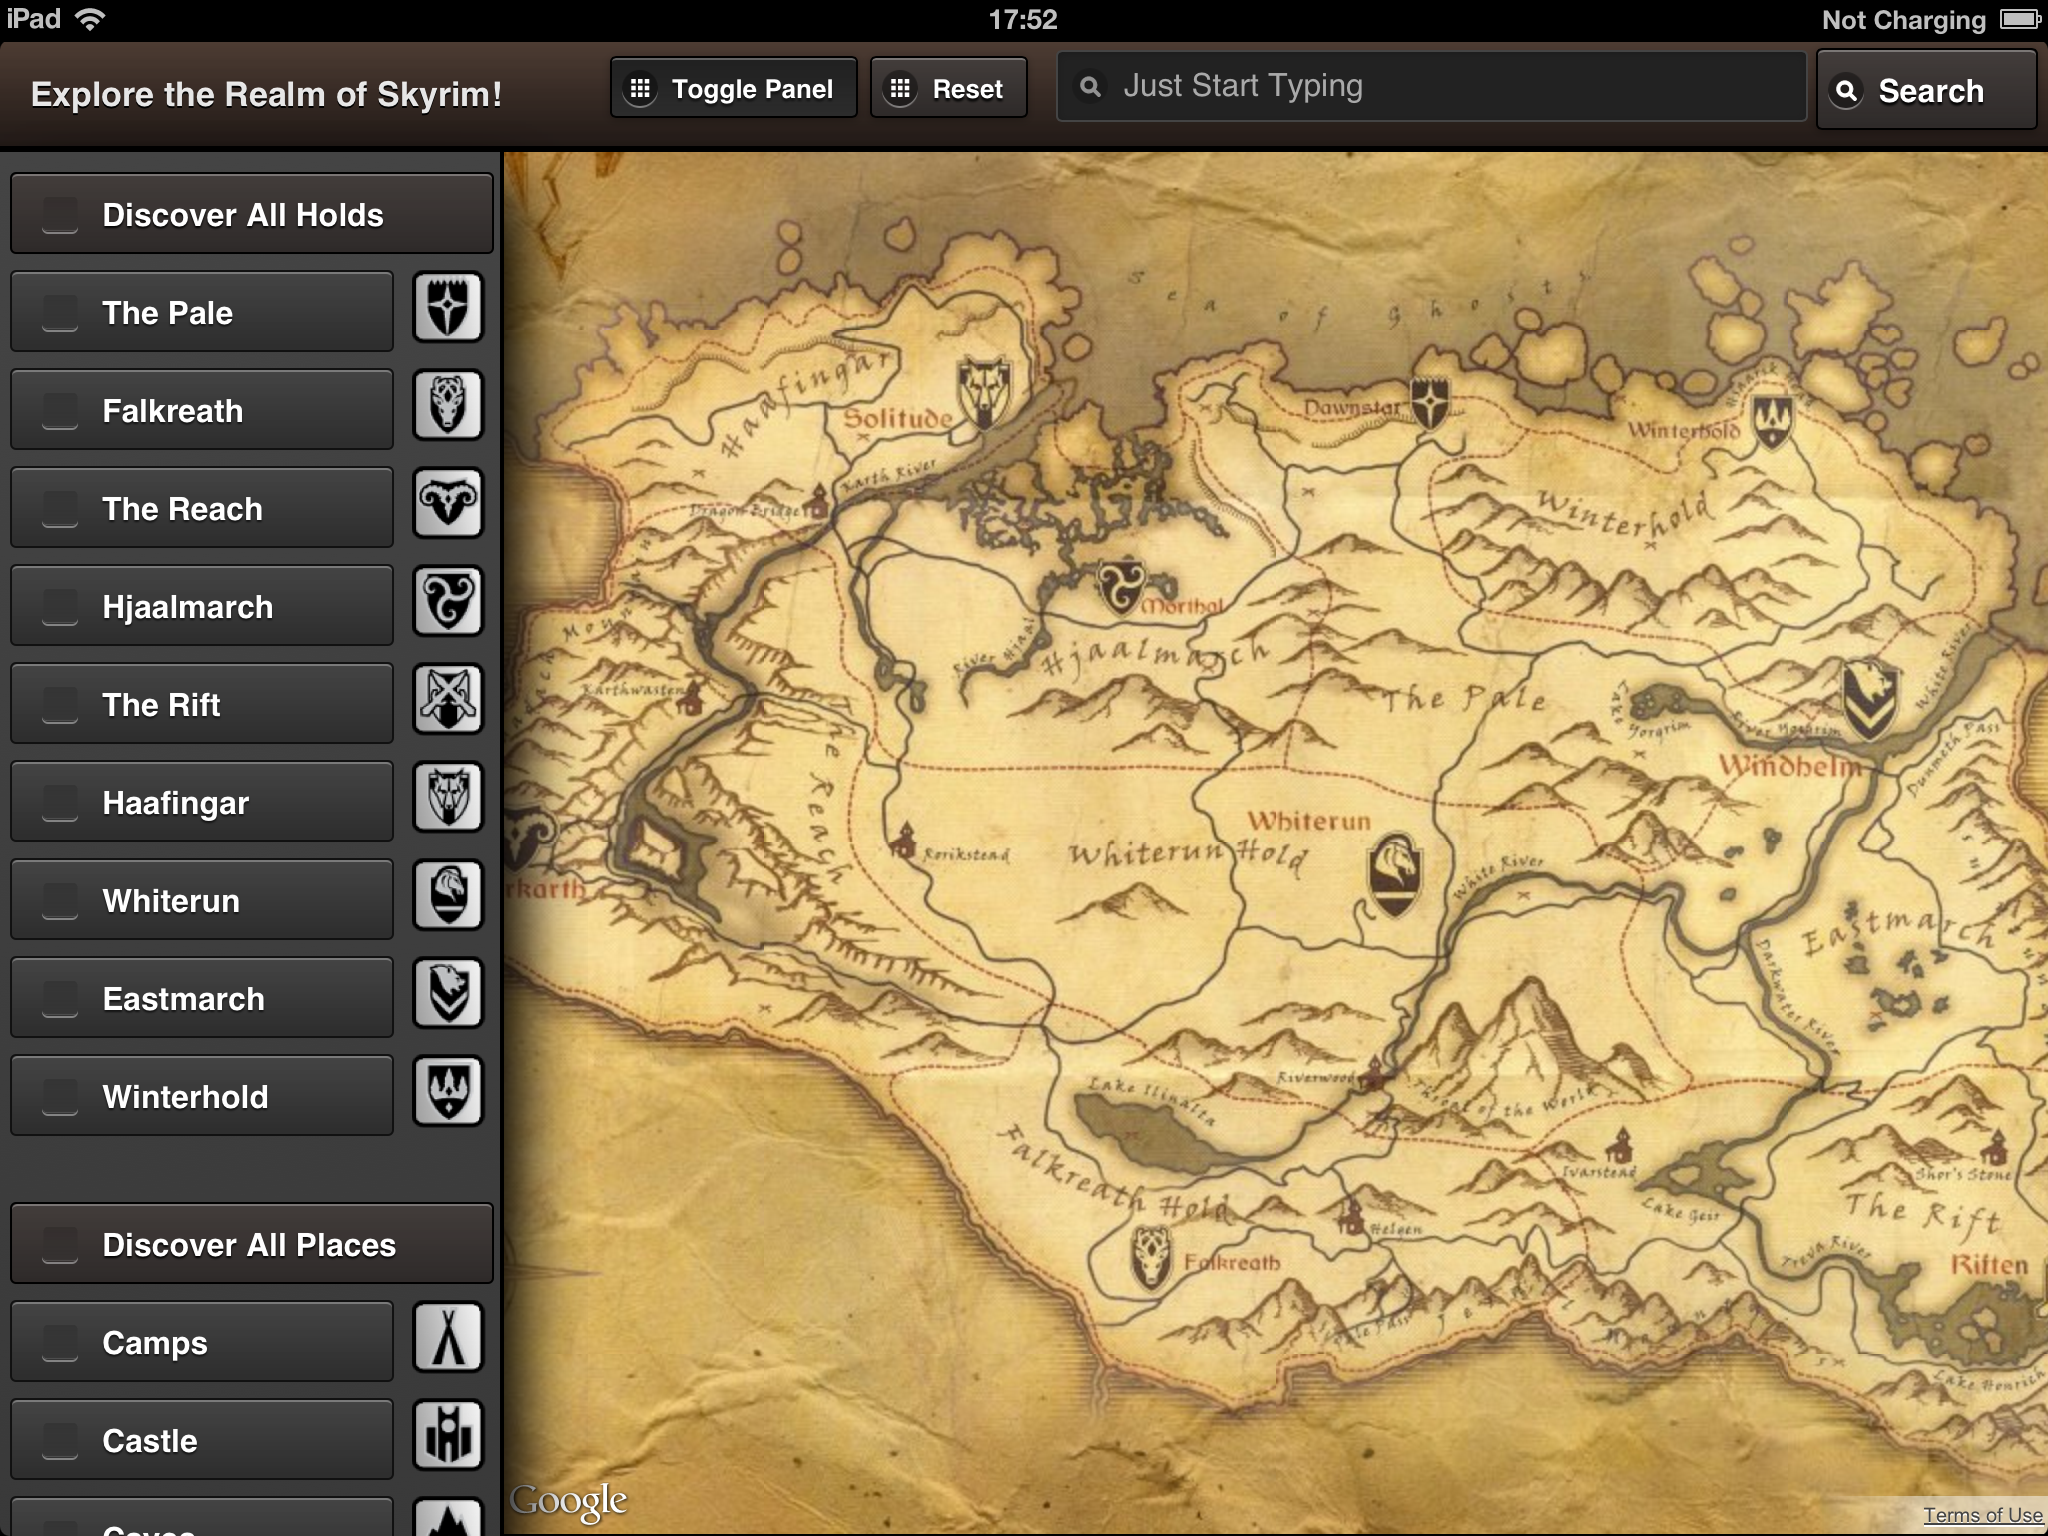 An Interactive Skyrim Map Realized By Leonardo Gandini